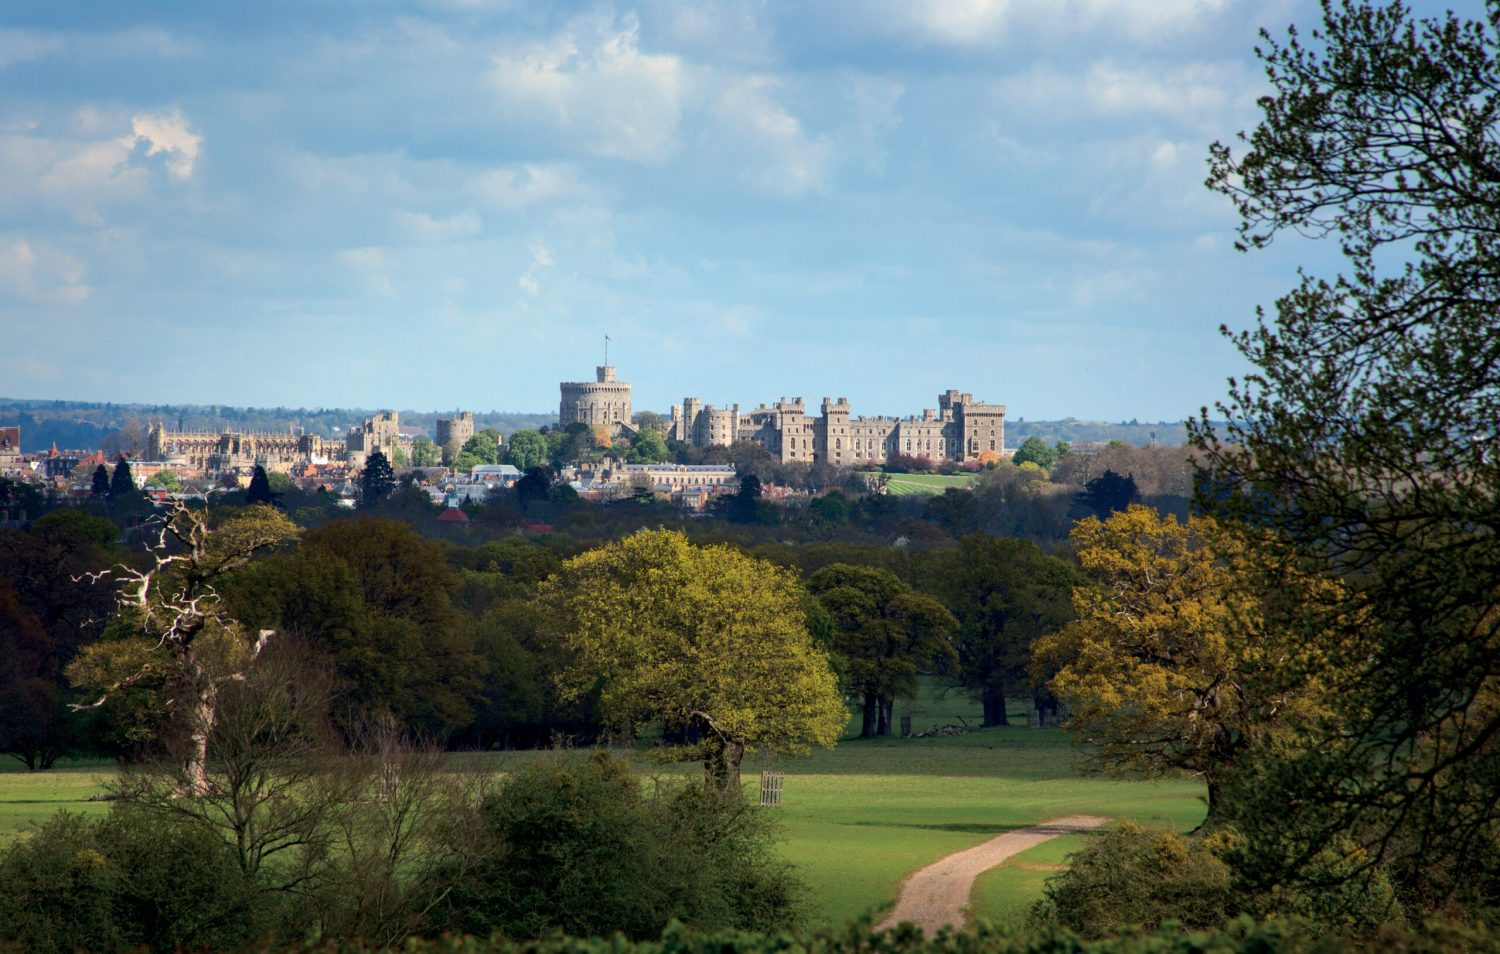 left Windsor Castle today, seen from the Great Park to the south-east. The basic outline of the castle, with the Round Tower in the Middle Ward, the adjoining Upper Ward (today containing the State Apartments), and the Lower Ward (with St George's Chapel) had been established by the early 12th century, when the castle was transformed from a garrison into a royal residence.